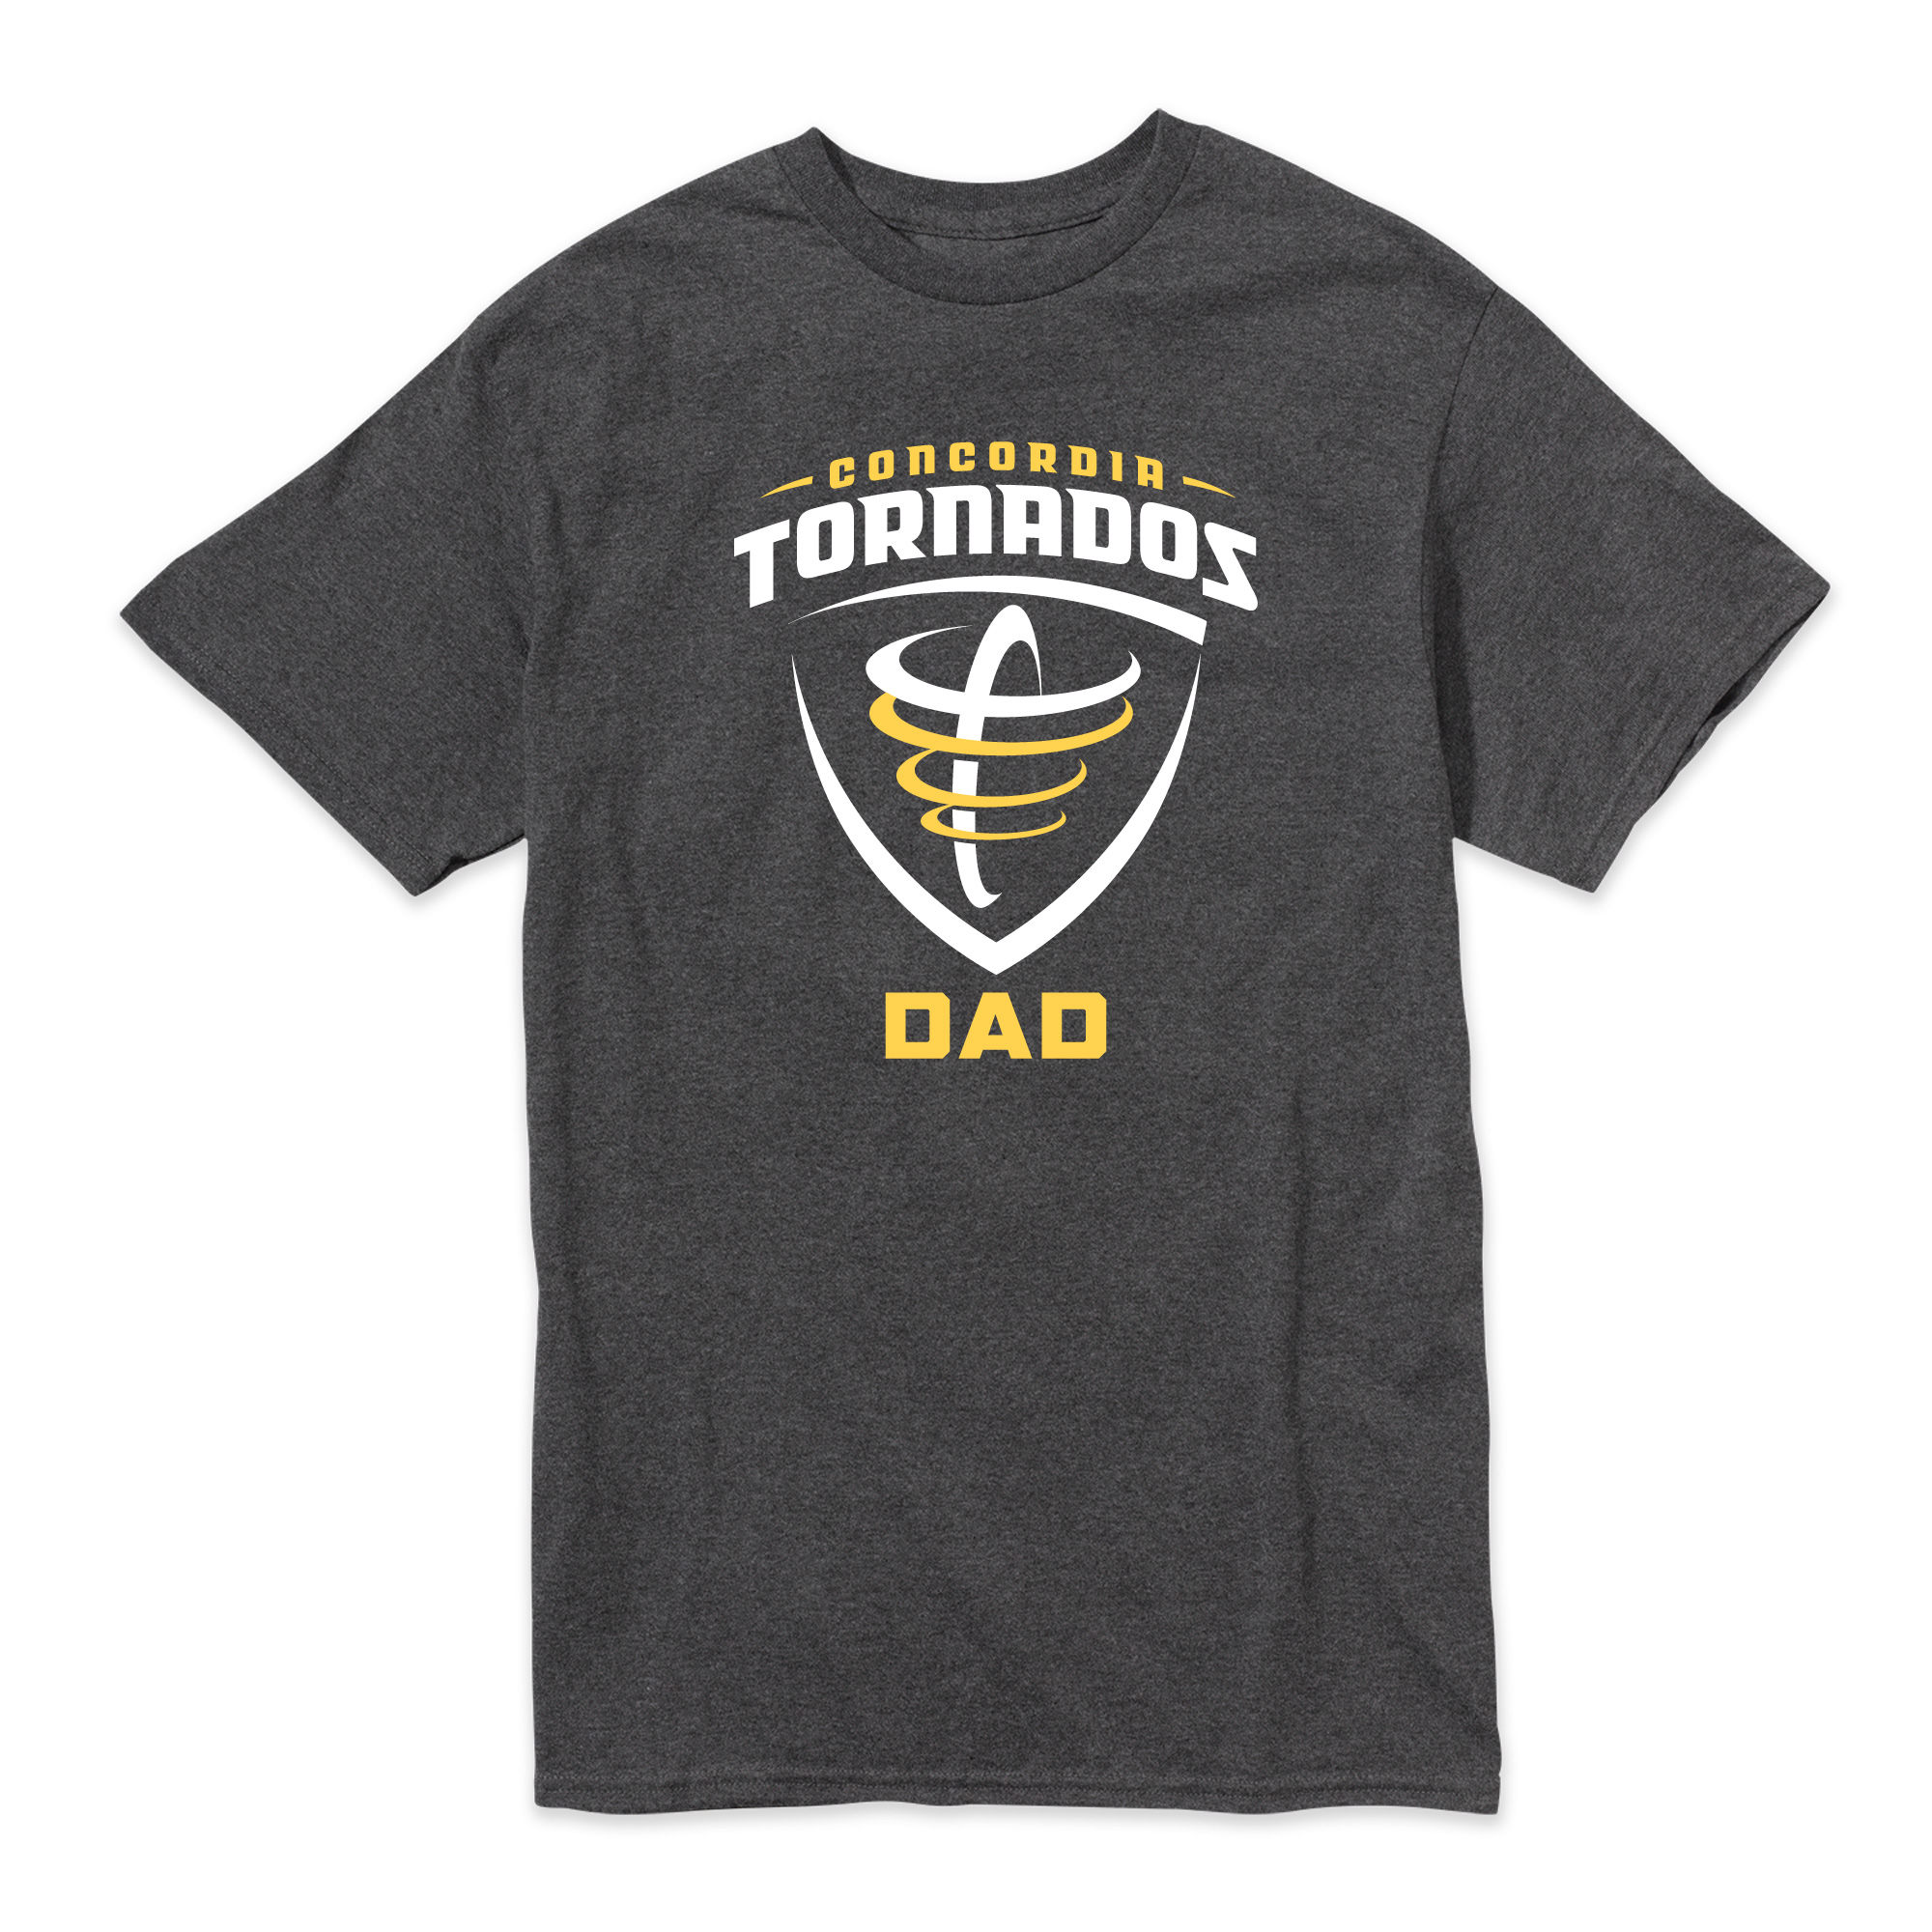 Concordia Torados Dad Tee - Charcoal Heather